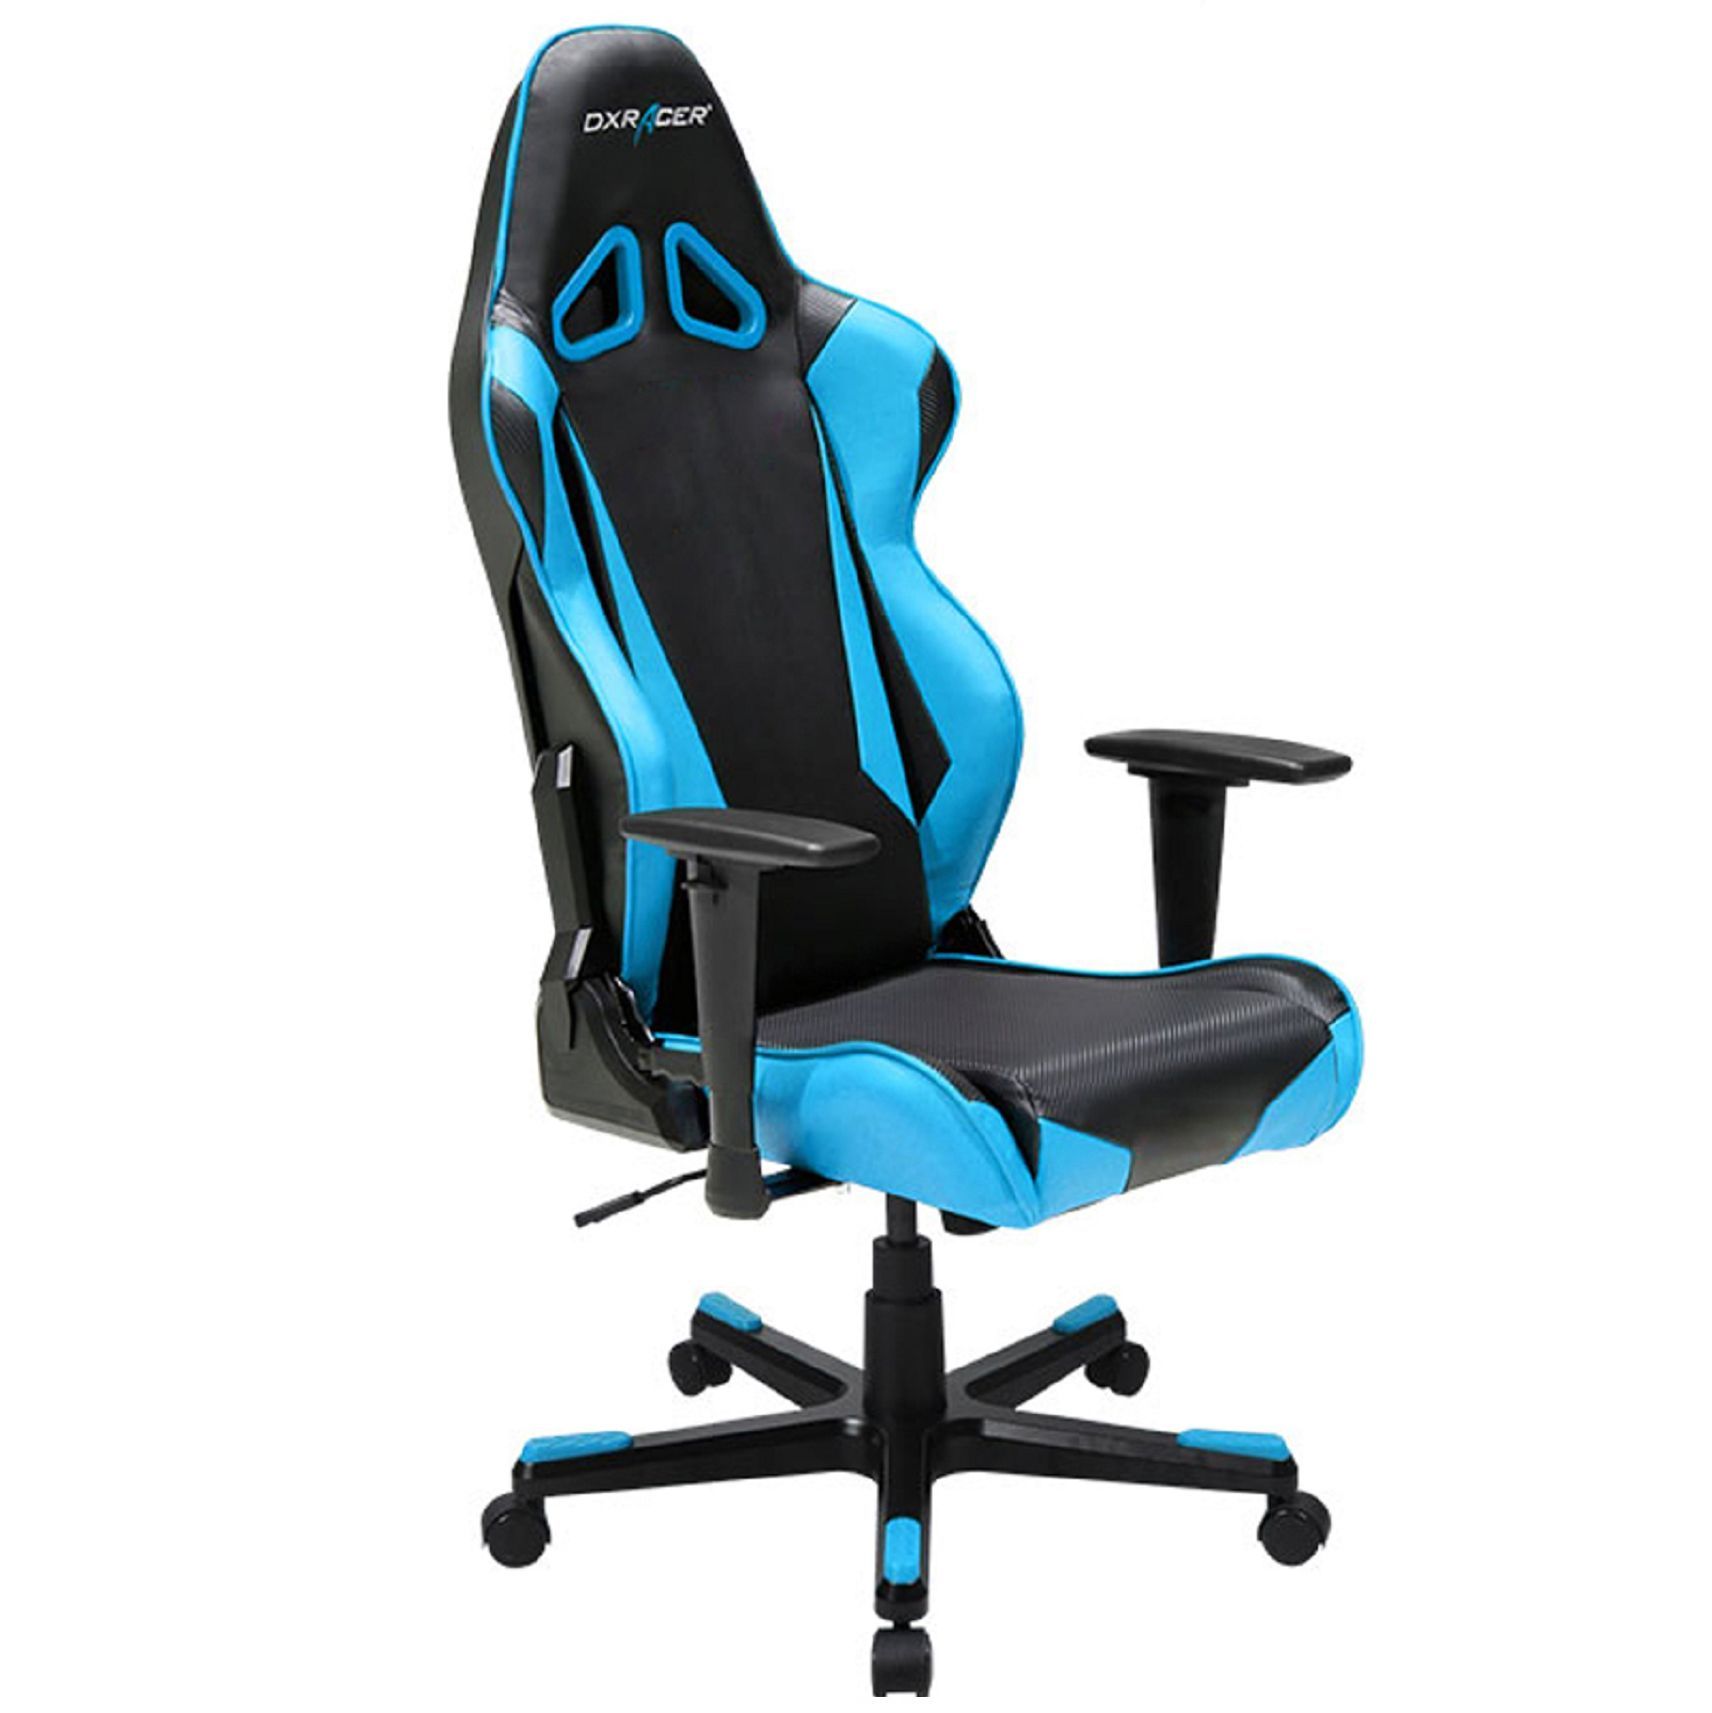 DXRacer OH RB1 NB High Back Racing Gaming Chair Carbon Look Vinyl PU